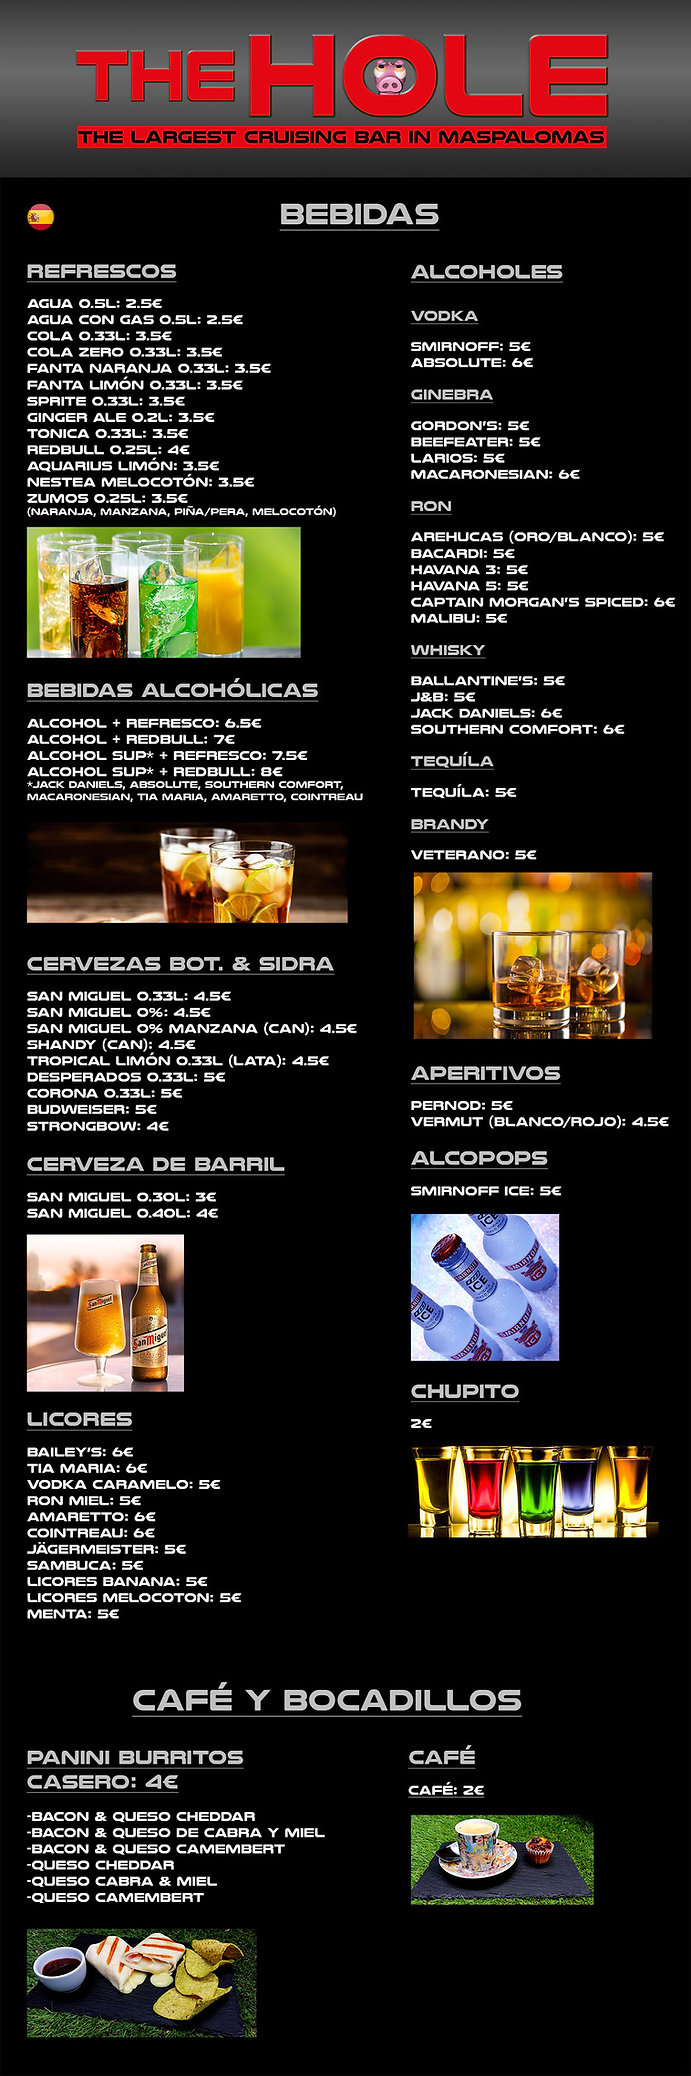 drink card The Hole spanish.jpg